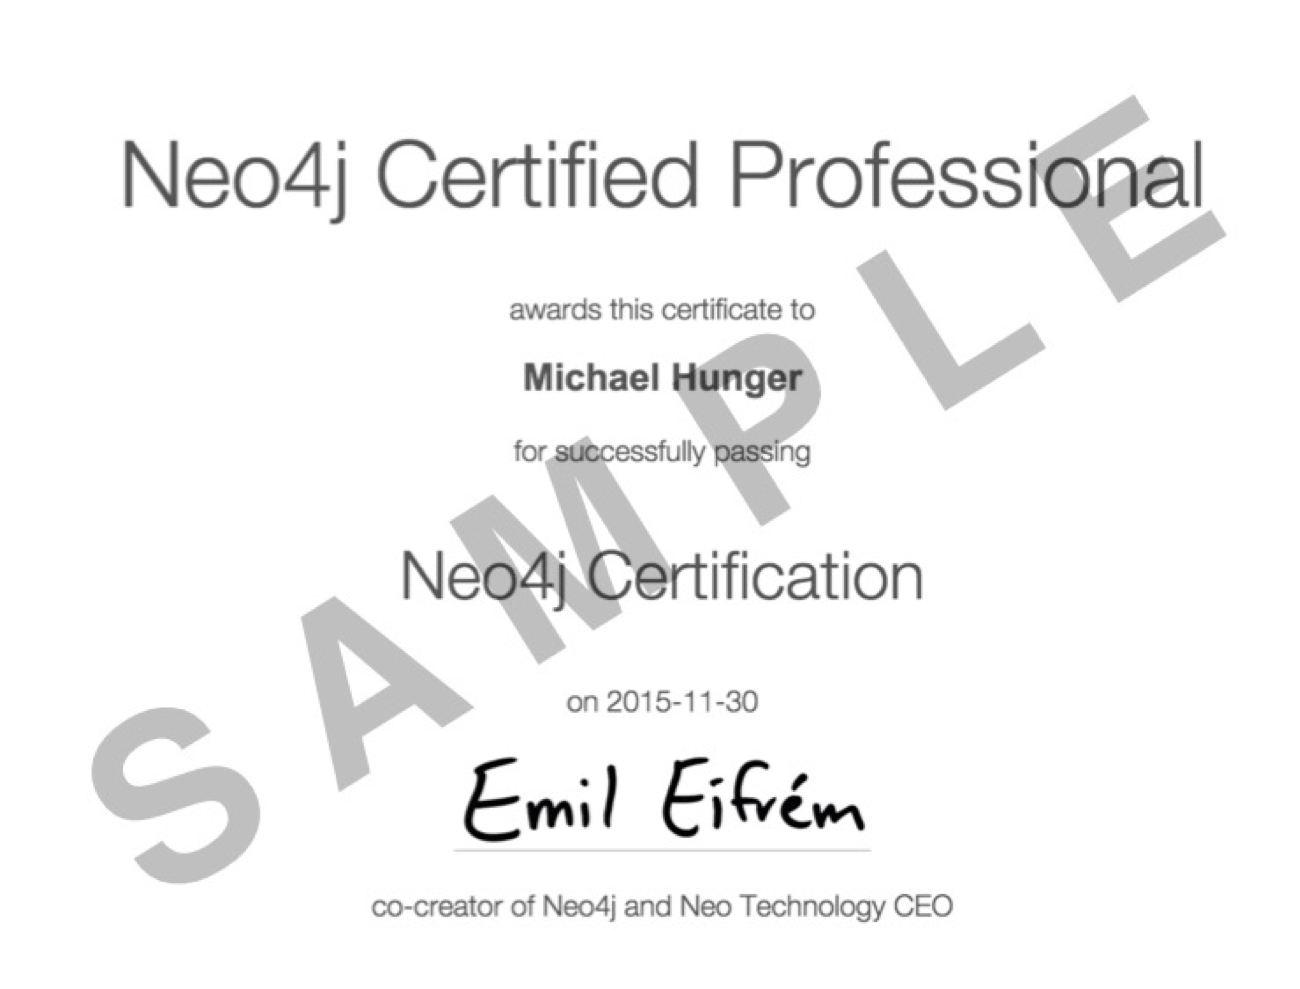 Announcing the First-Ever Neo4j Certification for